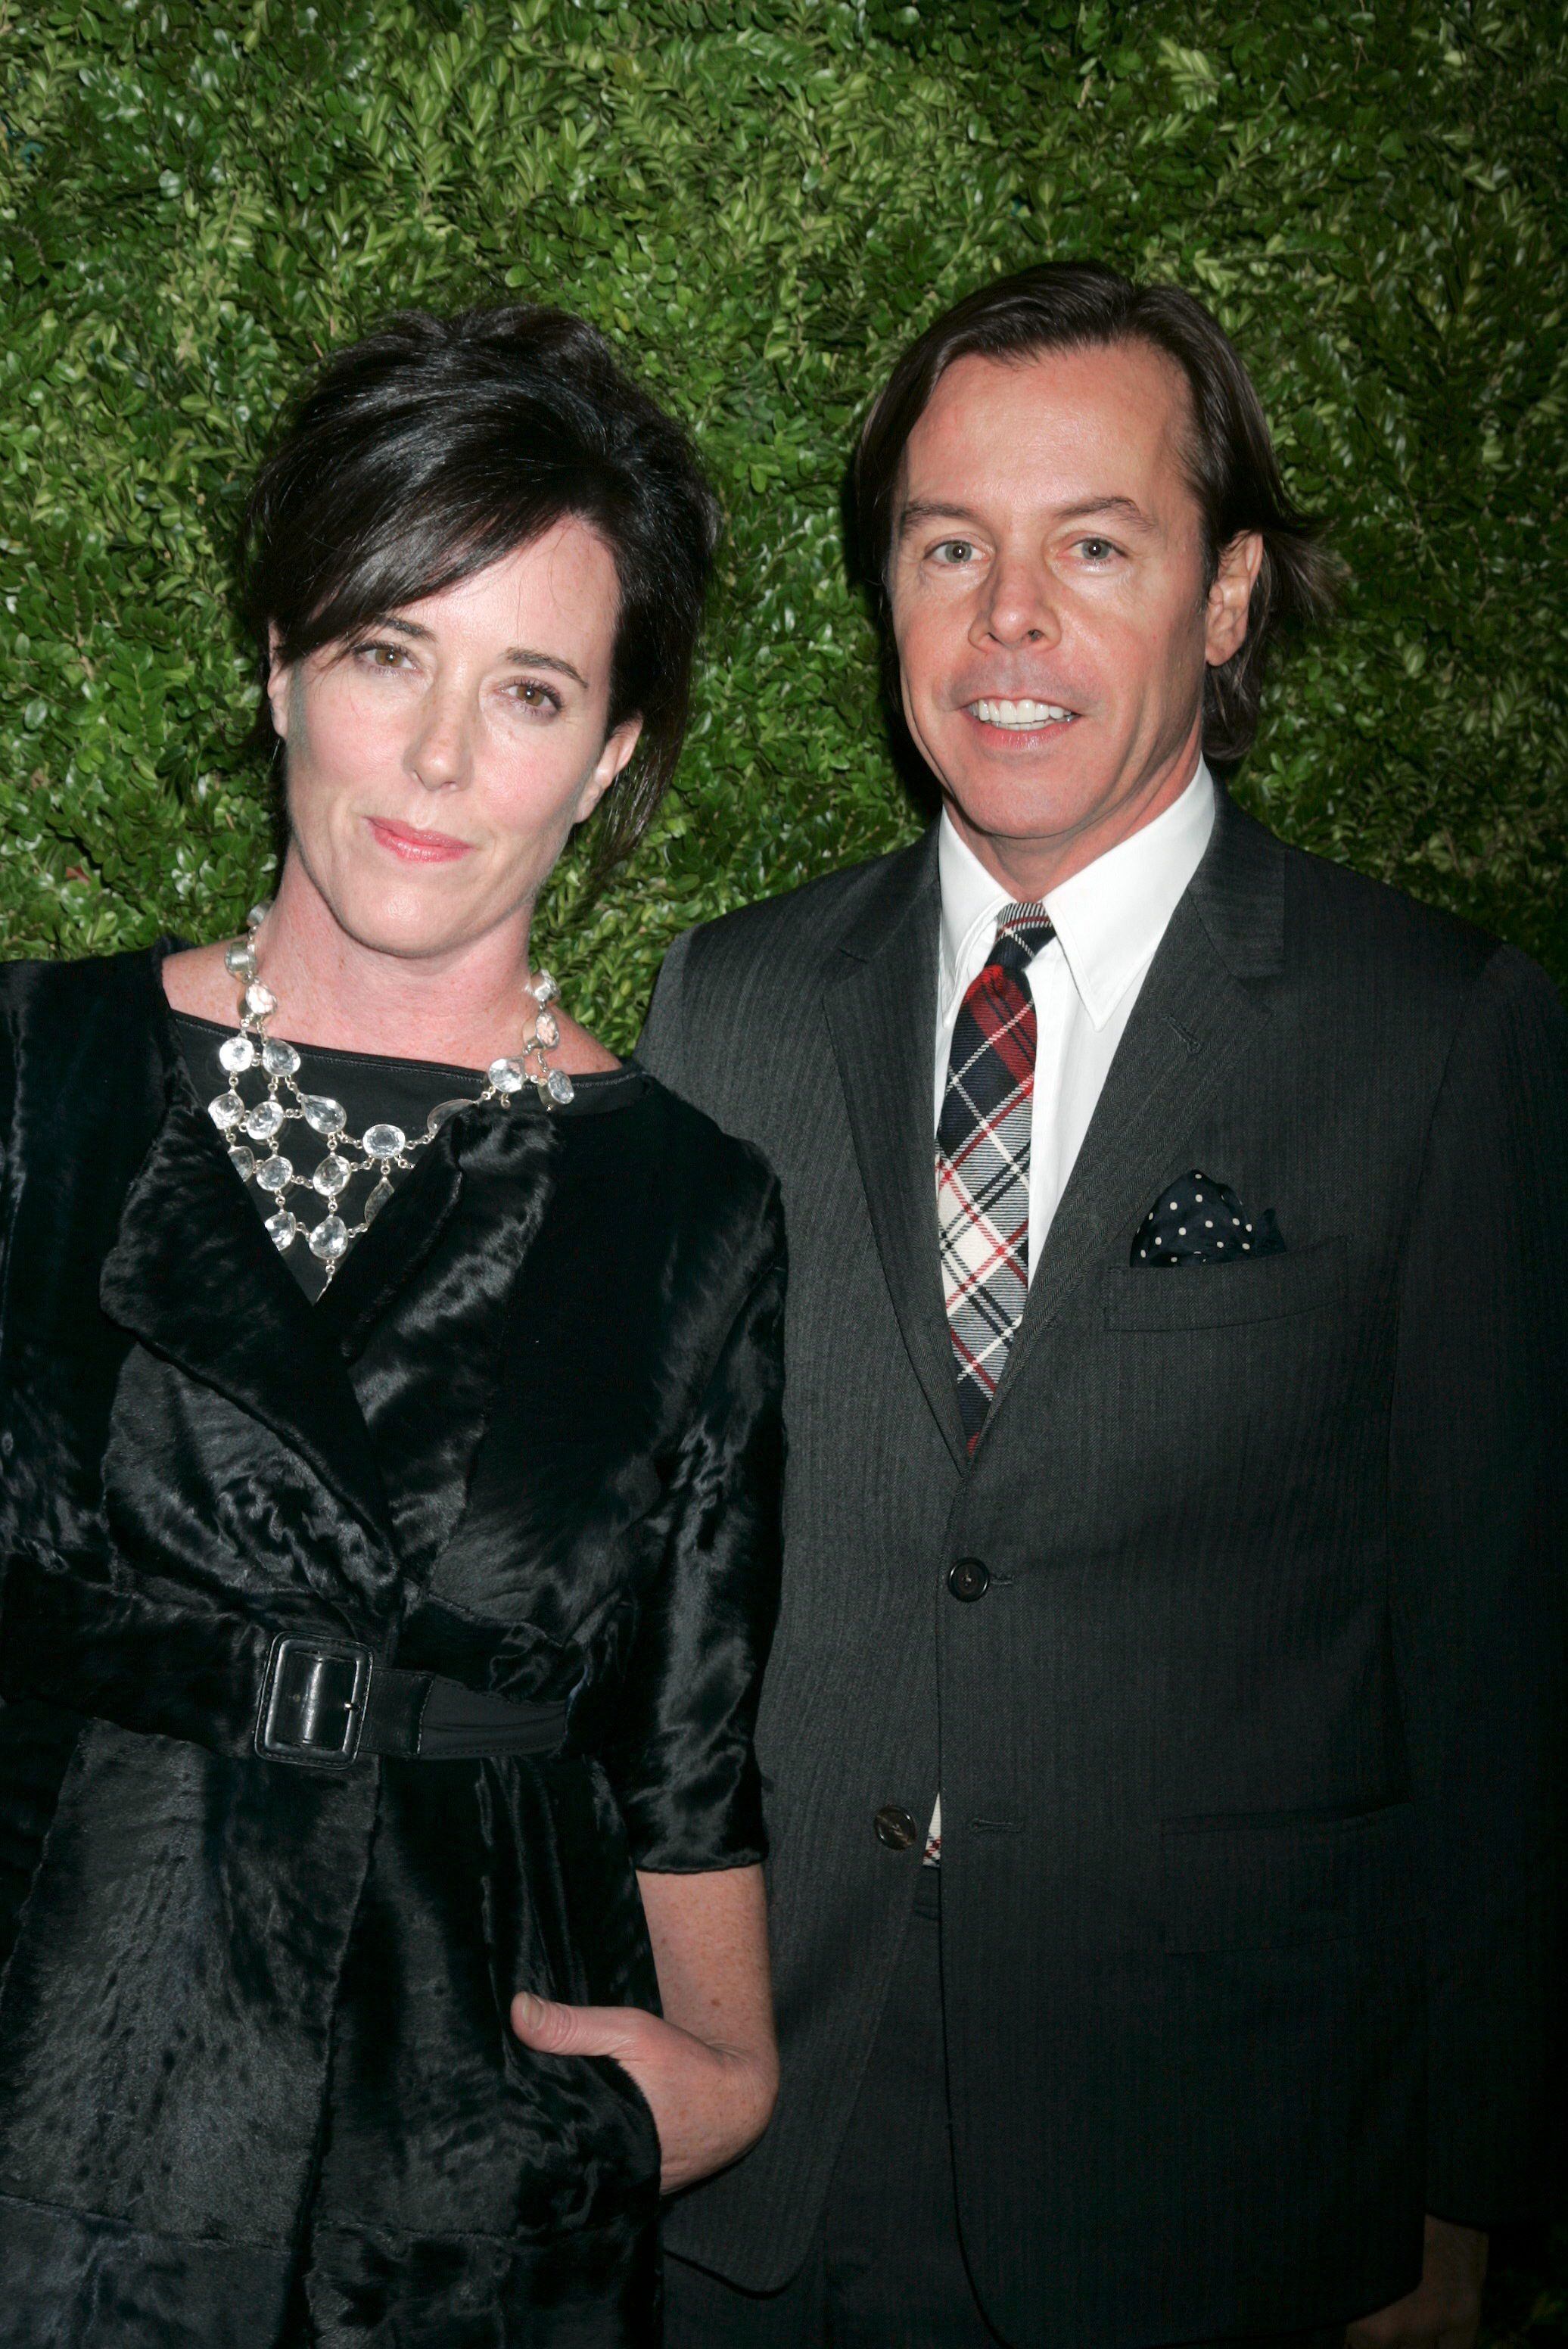 <div class='meta'><div class='origin-logo' data-origin='none'></div><span class='caption-text' data-credit='Gregory Pace/BEI/REX/Shutterstock'>Kate Spade and Andy Spade at the CFDA/Vogue Fashion Fund in New York in 2008</span></div>